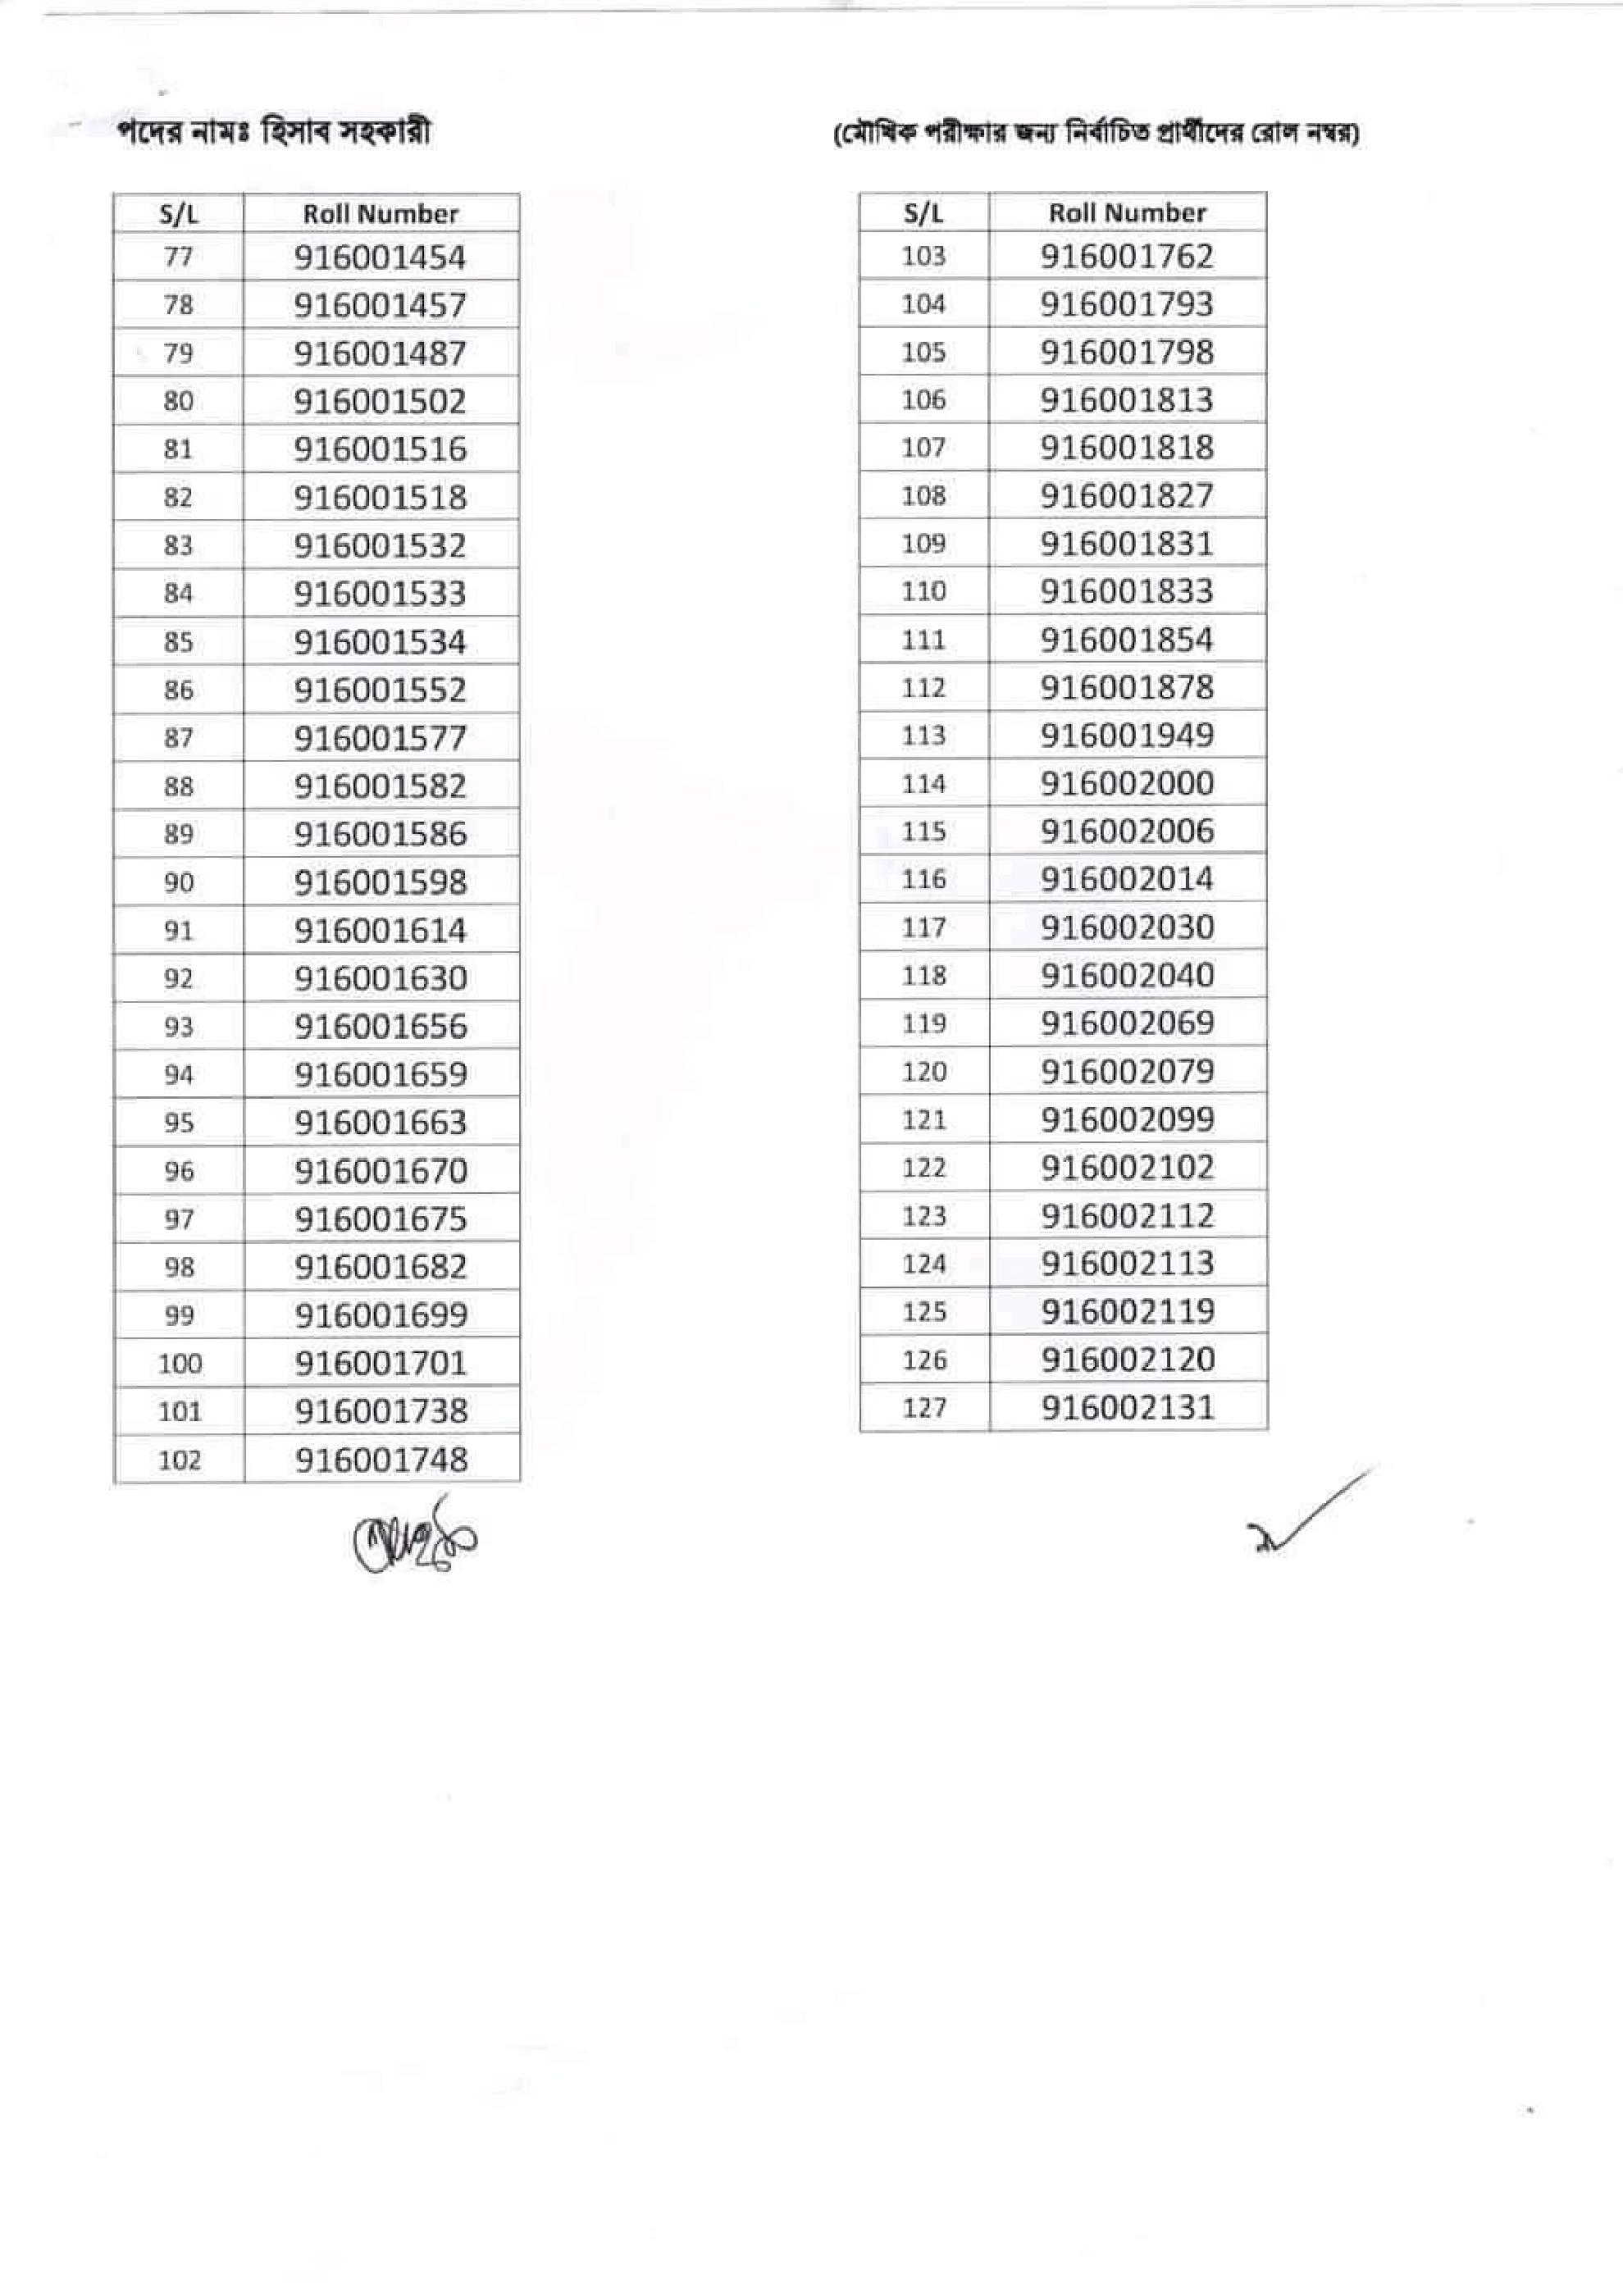 dss-result-page-030